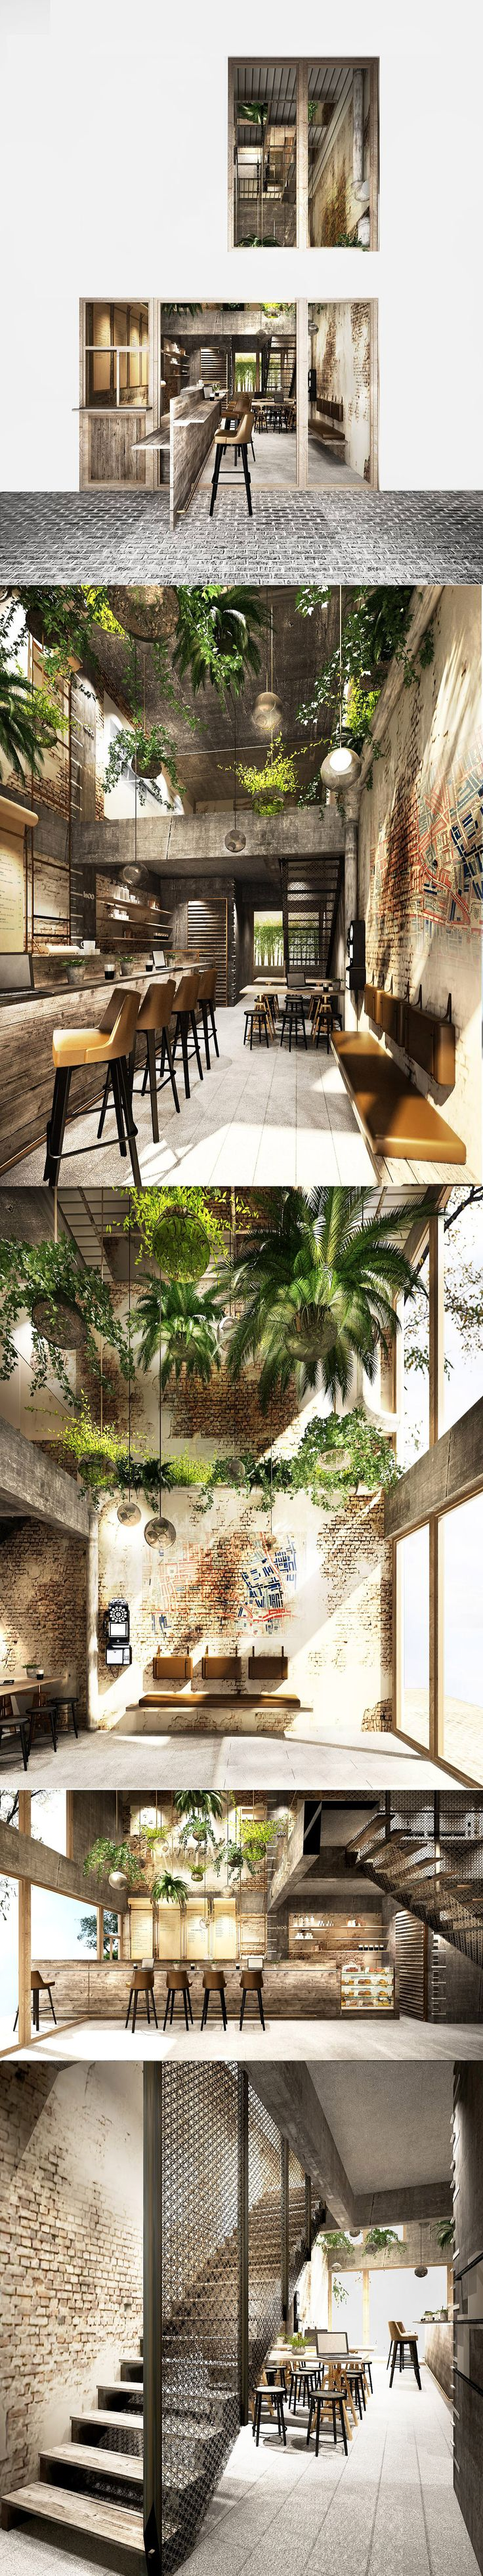 Chant's Neighbourhood Cafe - Coffee shop @ Sukhumvit 58 , Bangkok , Thailand -- design : Badintra Balankura / Context Studio @contextinterior | Come enjoy the experience of real estate with us in NYC at http://philippechoplin.elliman.com/ #nyc #manhattan #brooklyn #homes #design #architecture #realestate #askphilippe #immobilier